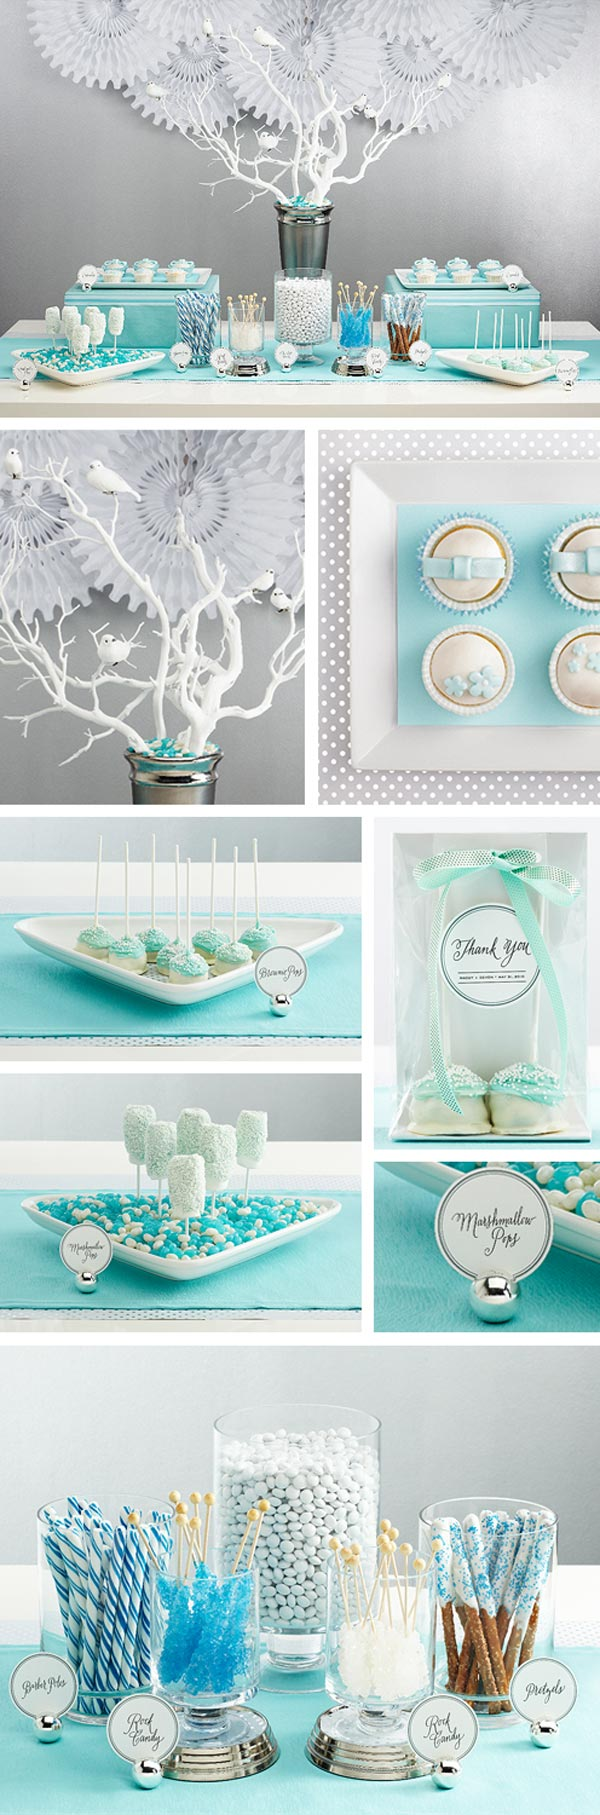 Baby shower decor ideas arhitektura for Baby shower decoration tips